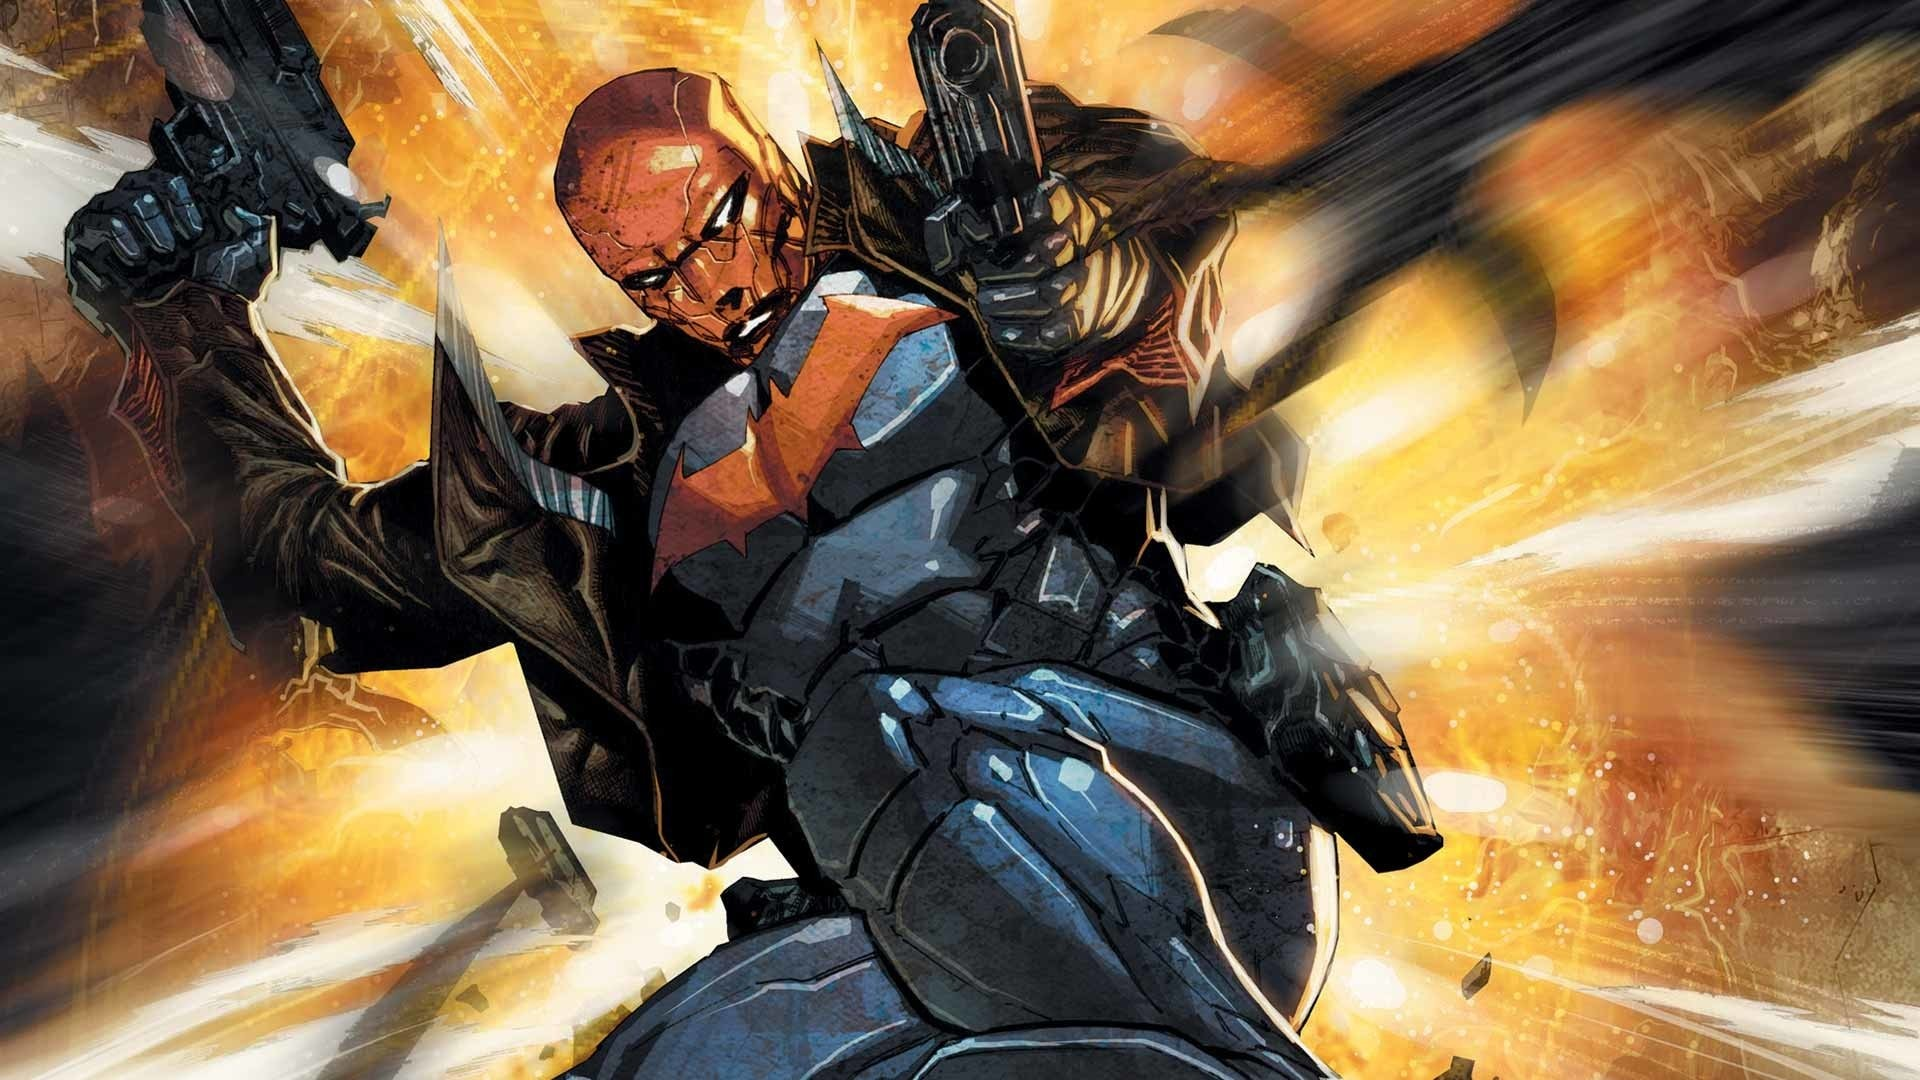 Red Hood Wallpaper 1920x1080: The Red Hood Wallpaper (84+ Images